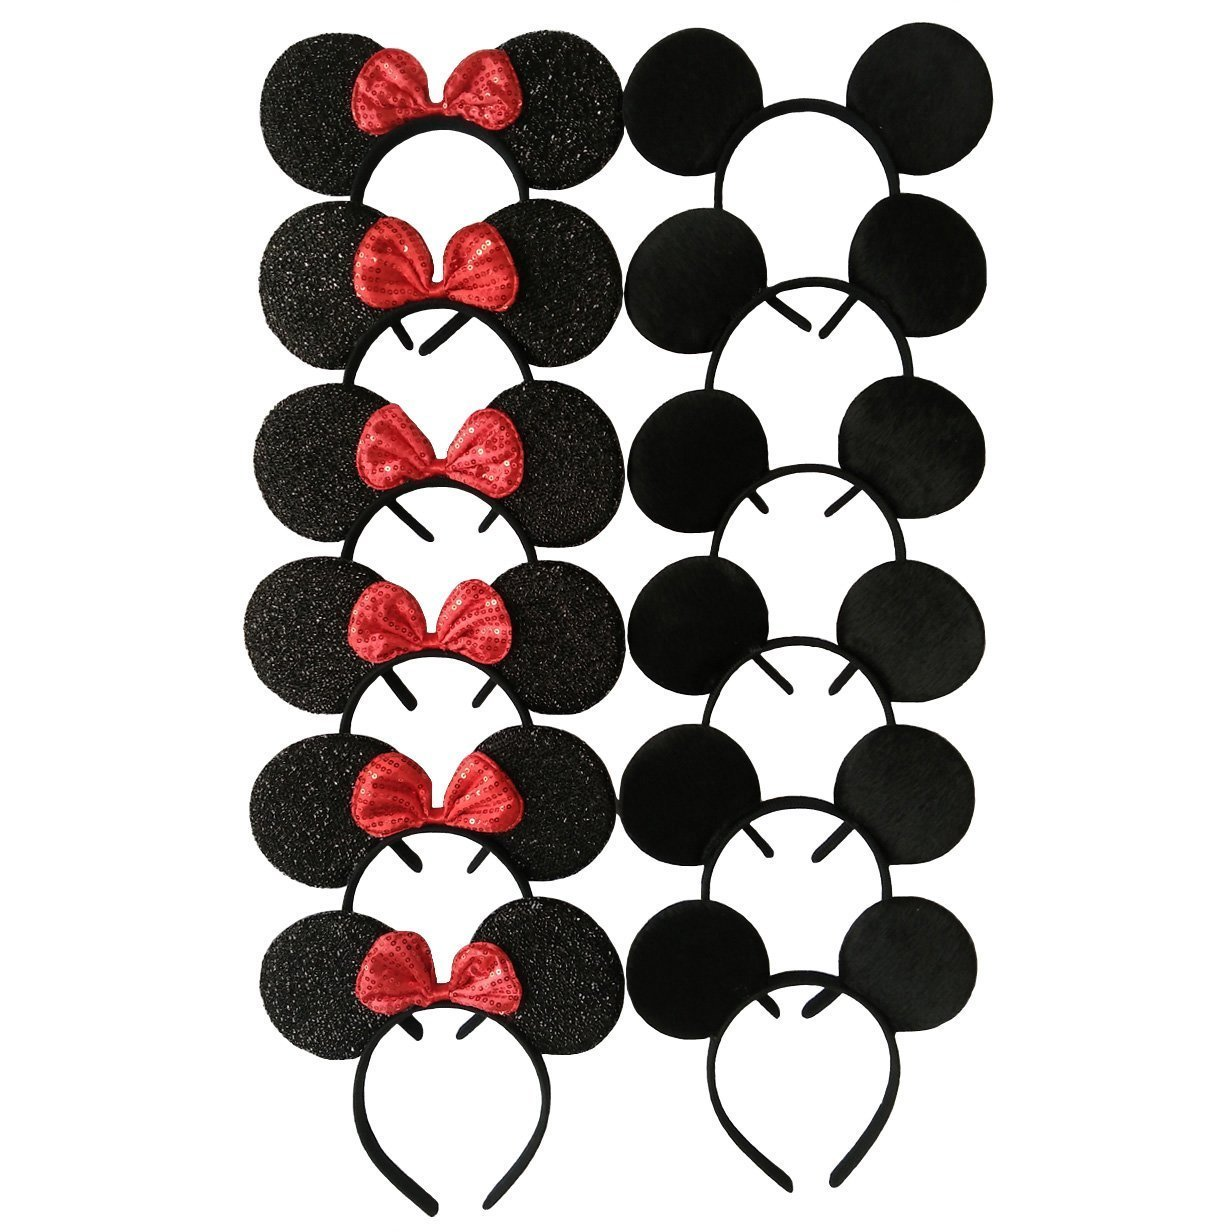 CHuangQi Mouse Ears Headband for Boys and Girls Birthday Party or Celebrations, Solid Black and Red Bow, Pack of 12 by CHuangQi (Image #1)